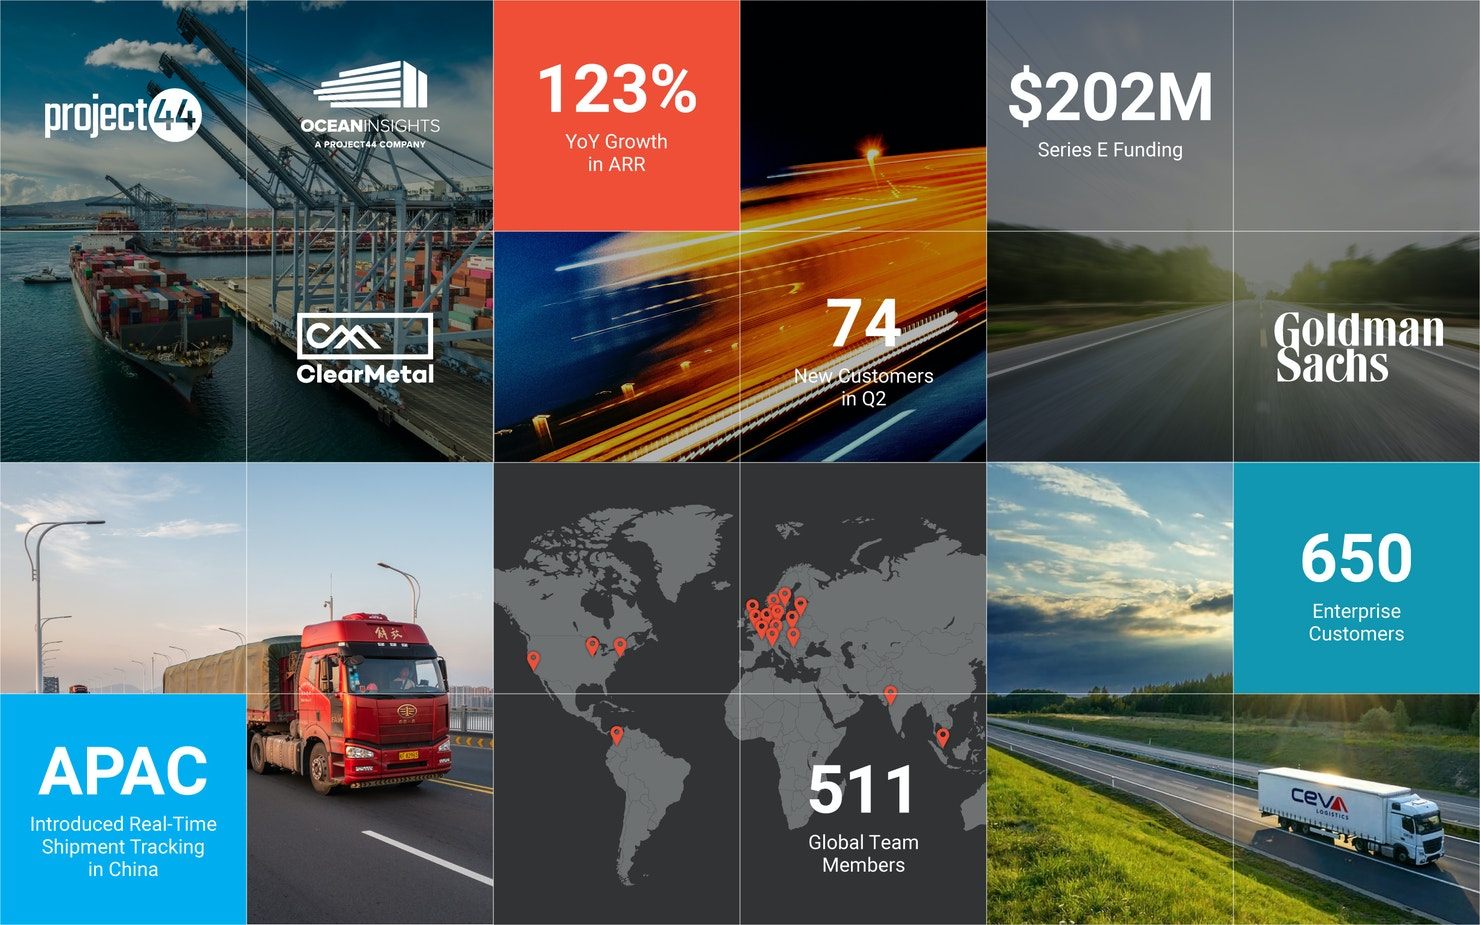 project44 Q2 ARR exceeds that of next 6 visibility companies combined